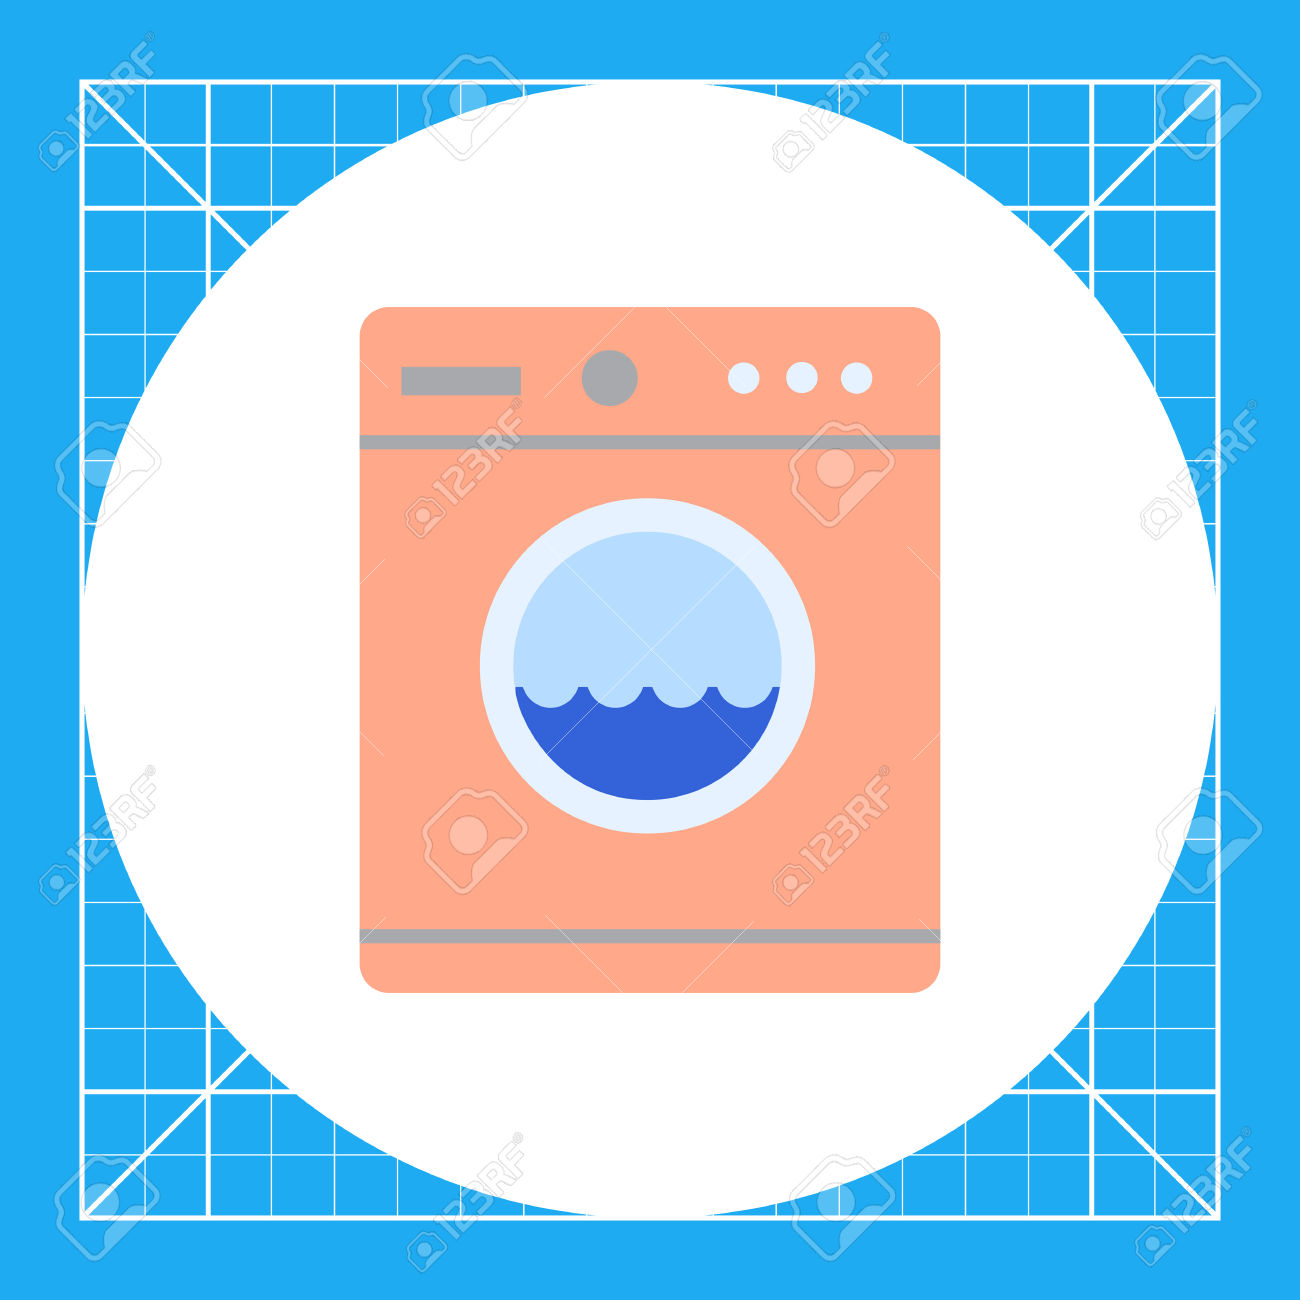 Icon Of Pink Washing Machine With Water In Drum Royalty Free.